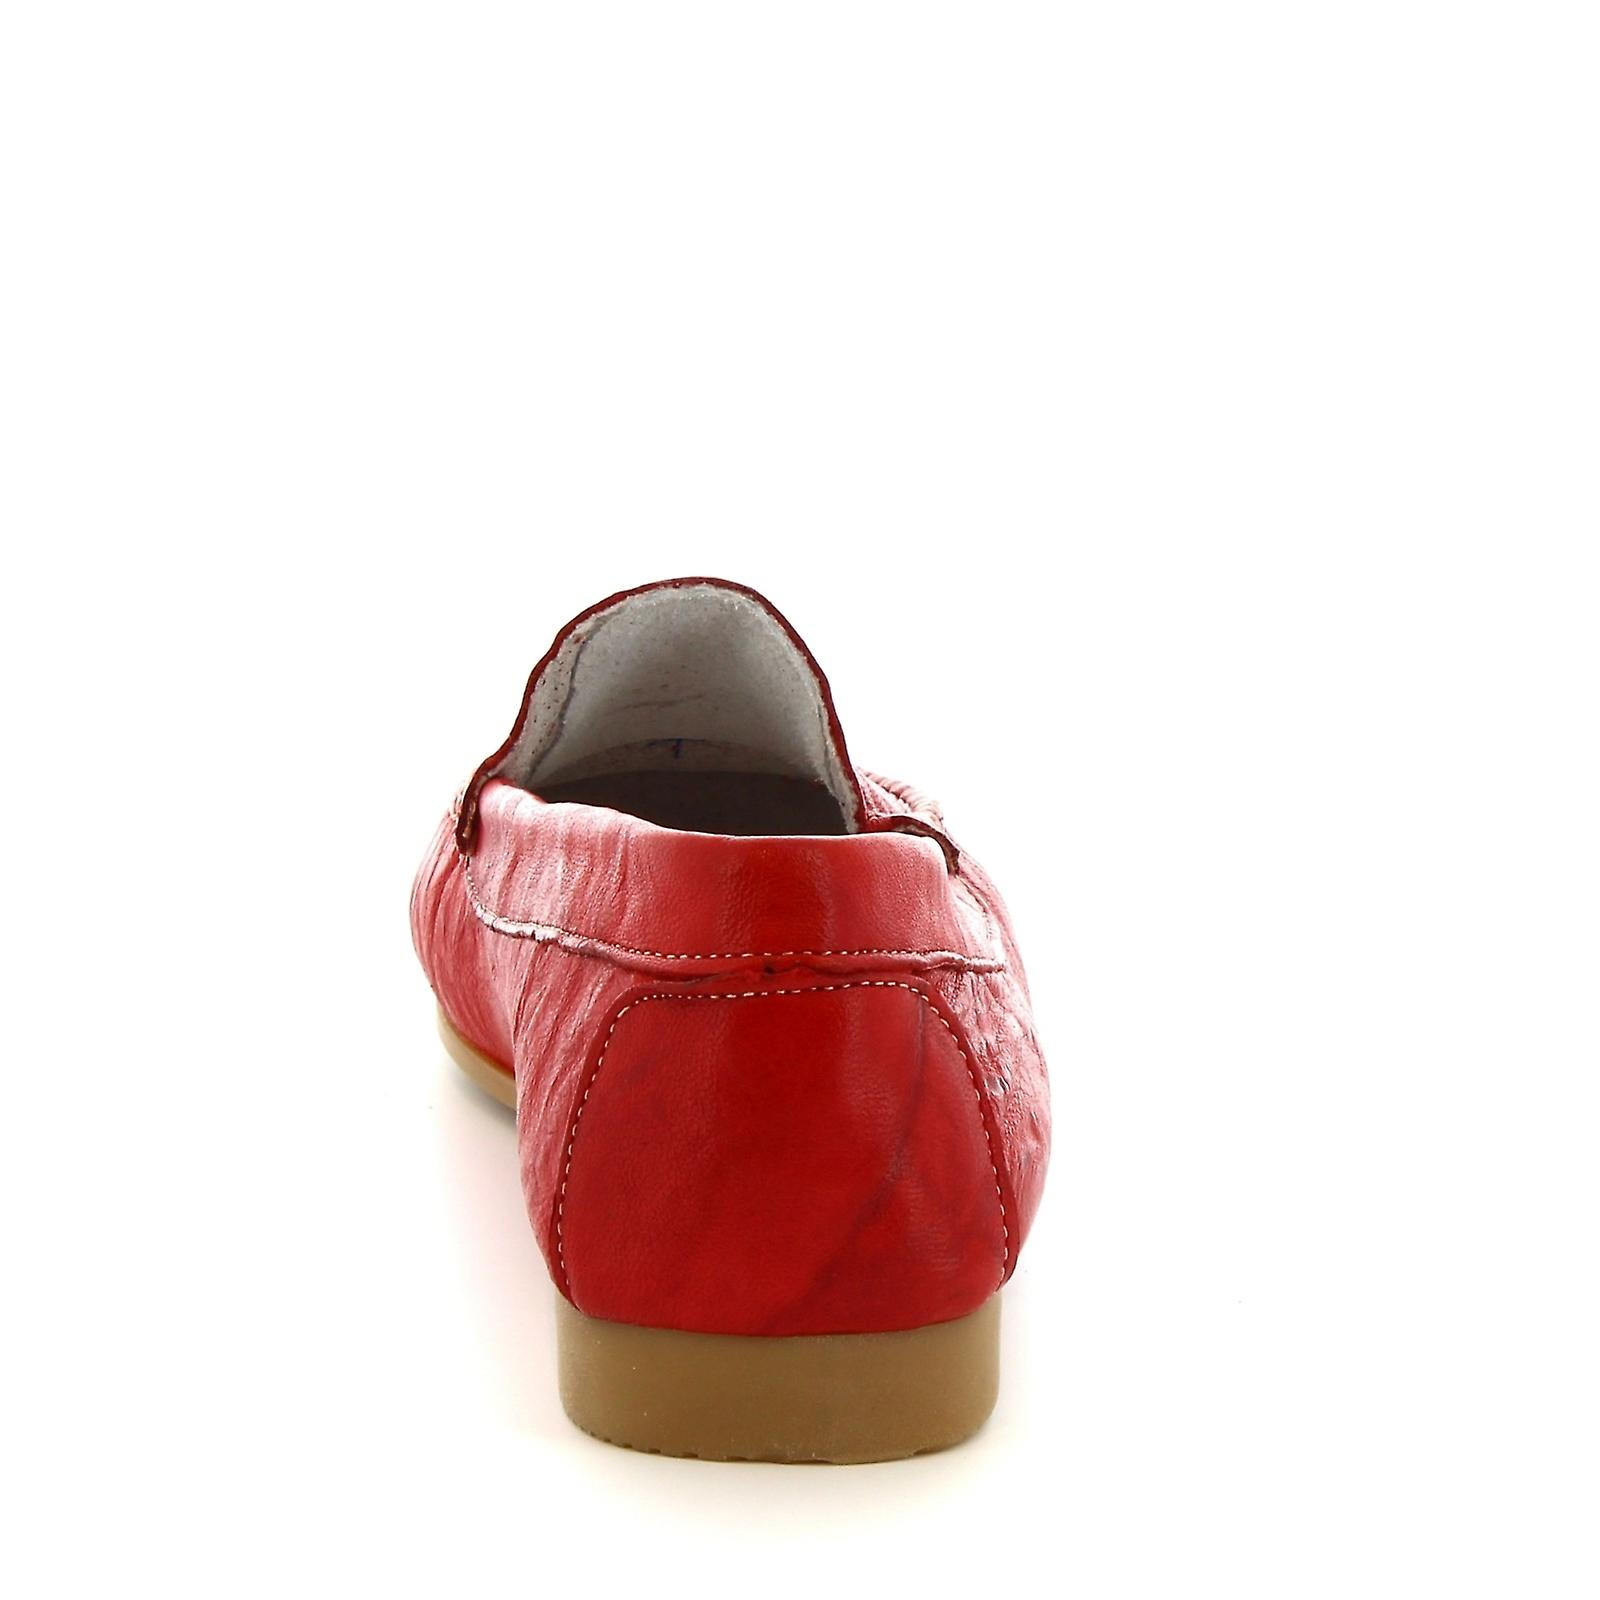 Leonardo Shoes Women's handmade slip-on flat loafers in red calf leather